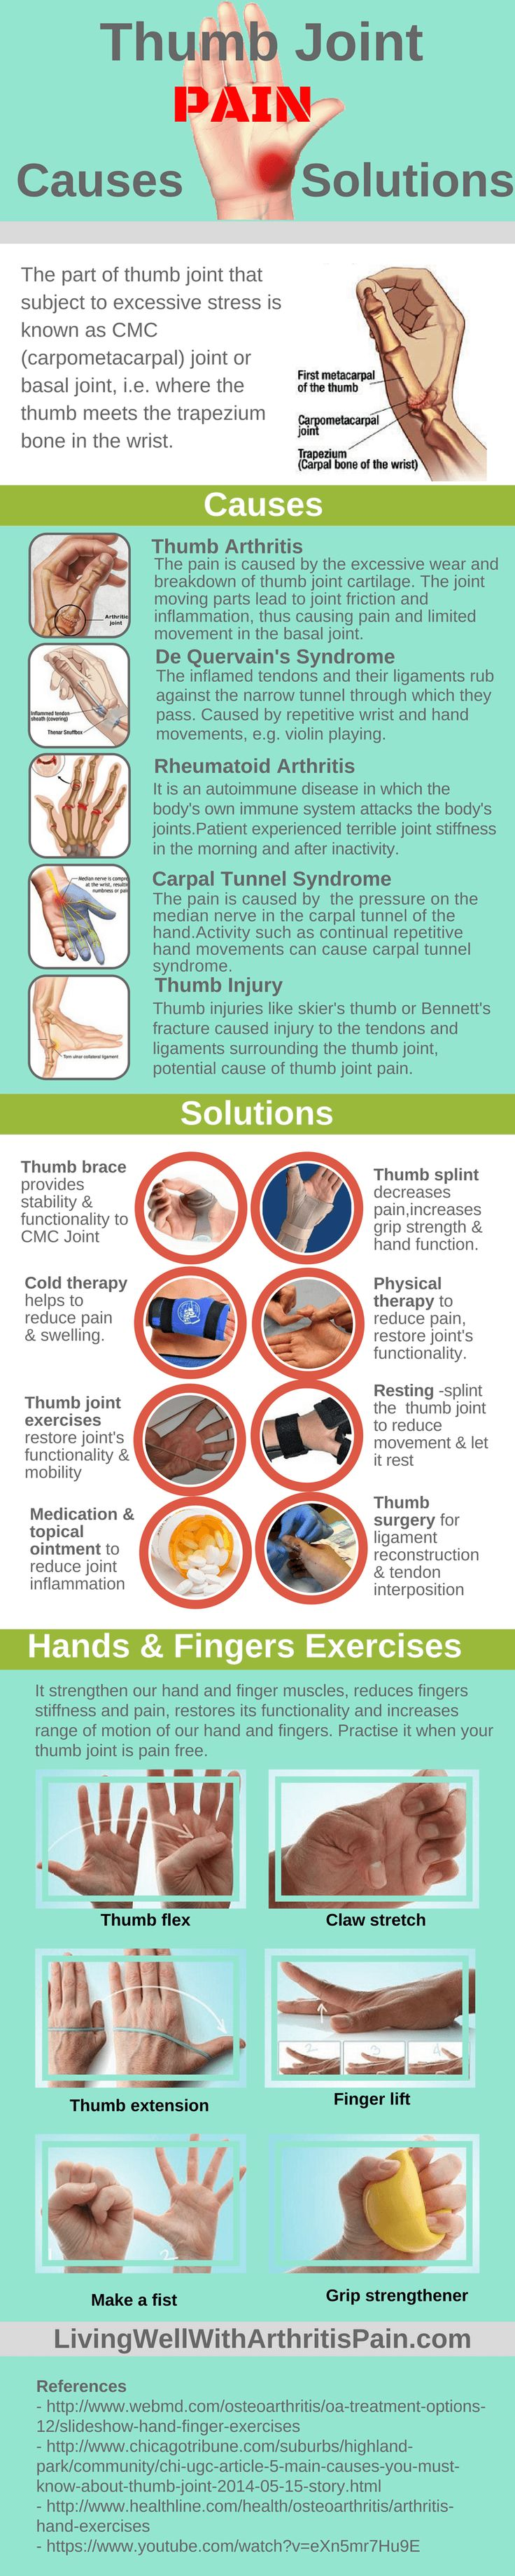 thumb-joint-pain-infographic  See it on http://Papr.Club as a Monthly Subscription